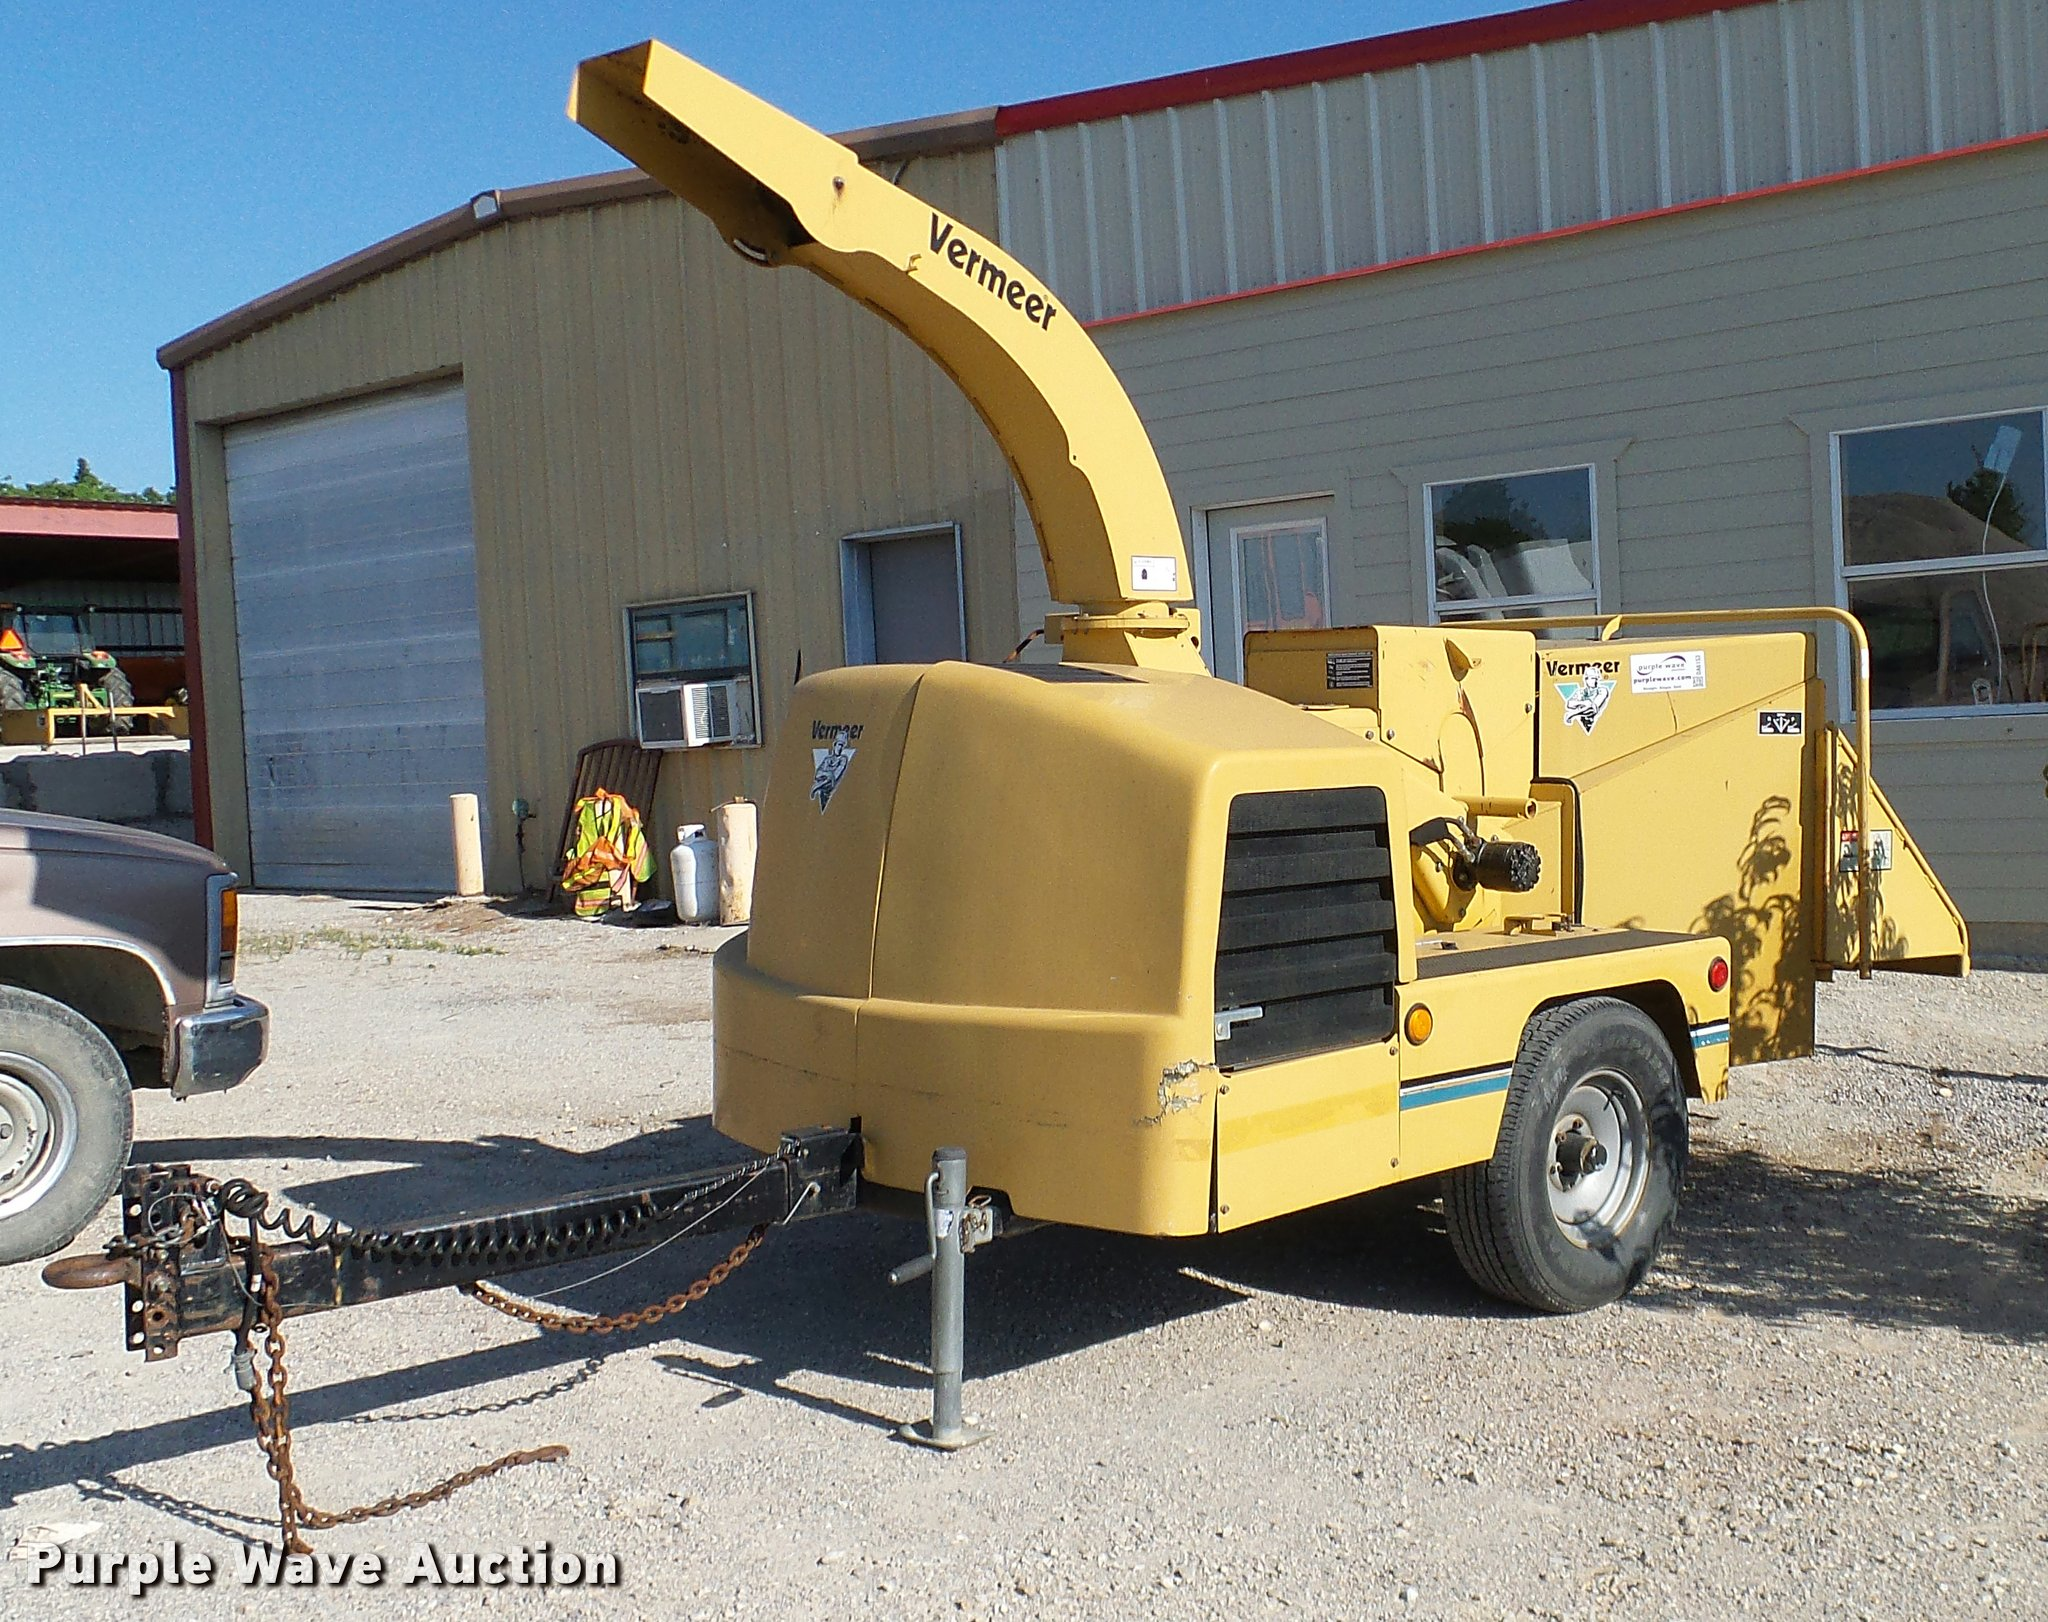 2001 Vermeer BC1000XL wood chipper | Item DA6153 | SOLD! Jun... on